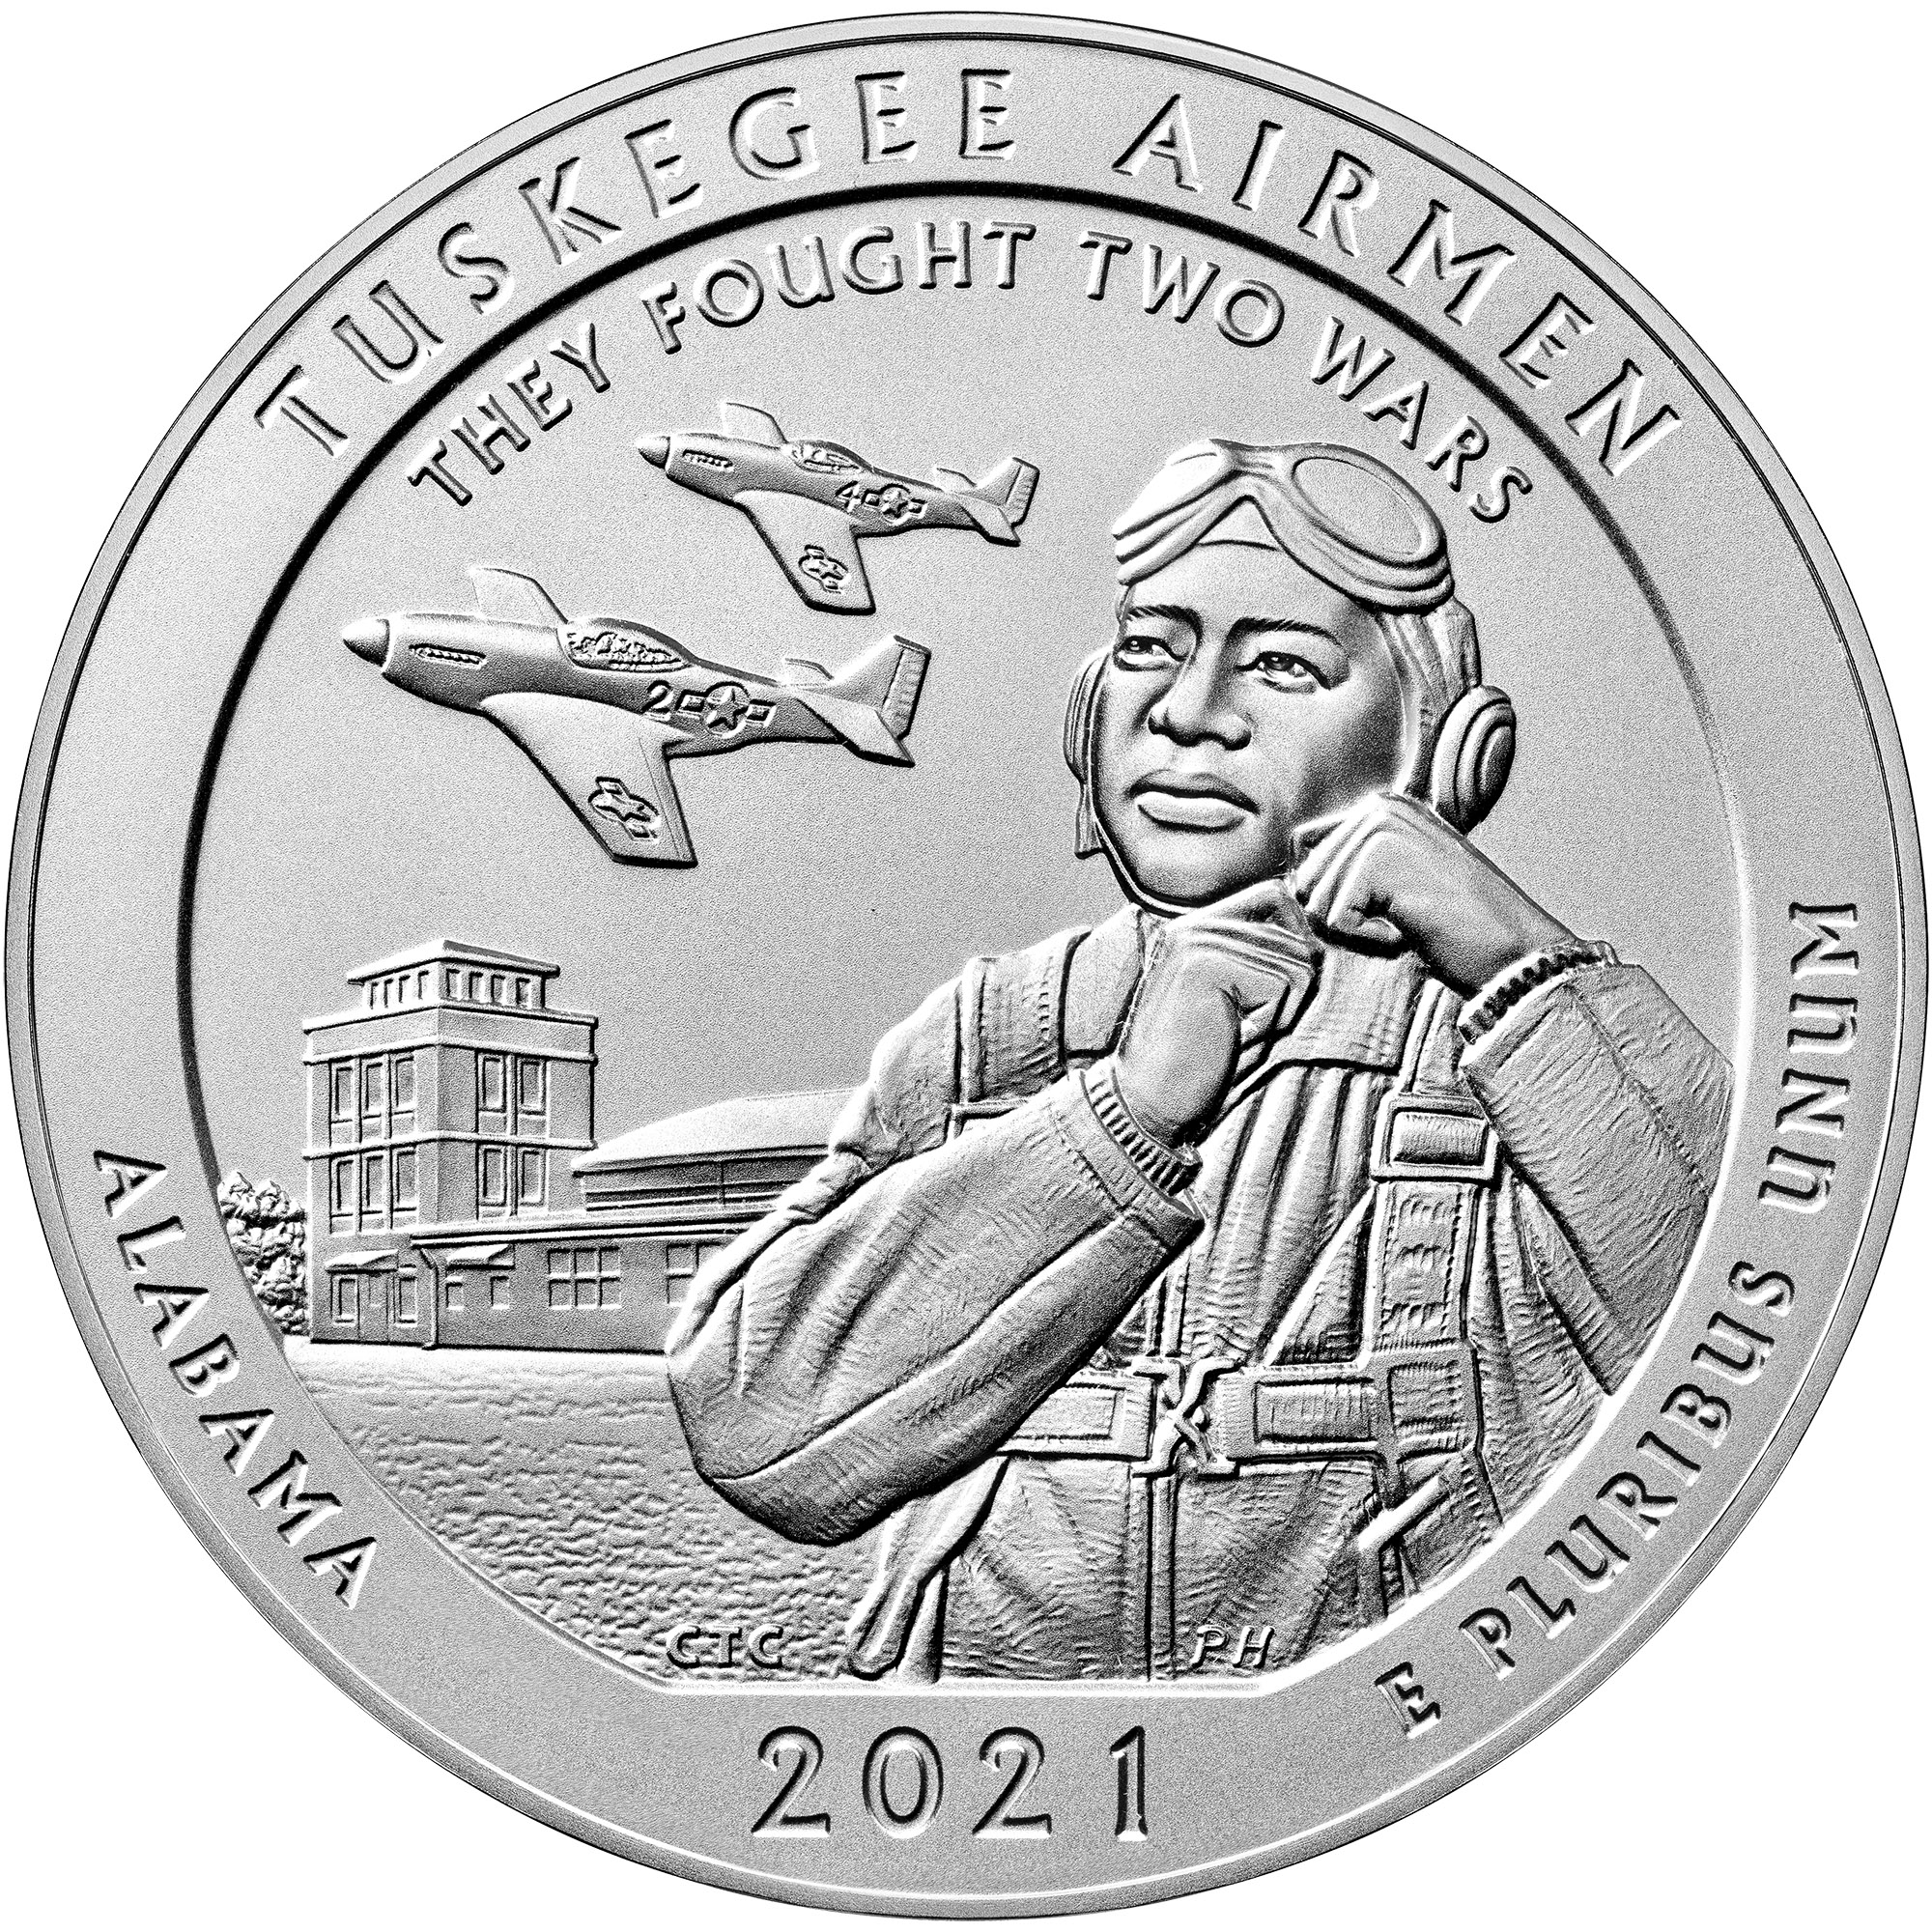 2021 America the Beautiful Quarters Five Ounce Silver Uncirculated Coin Tuskegee Airmen Alabama Reverse